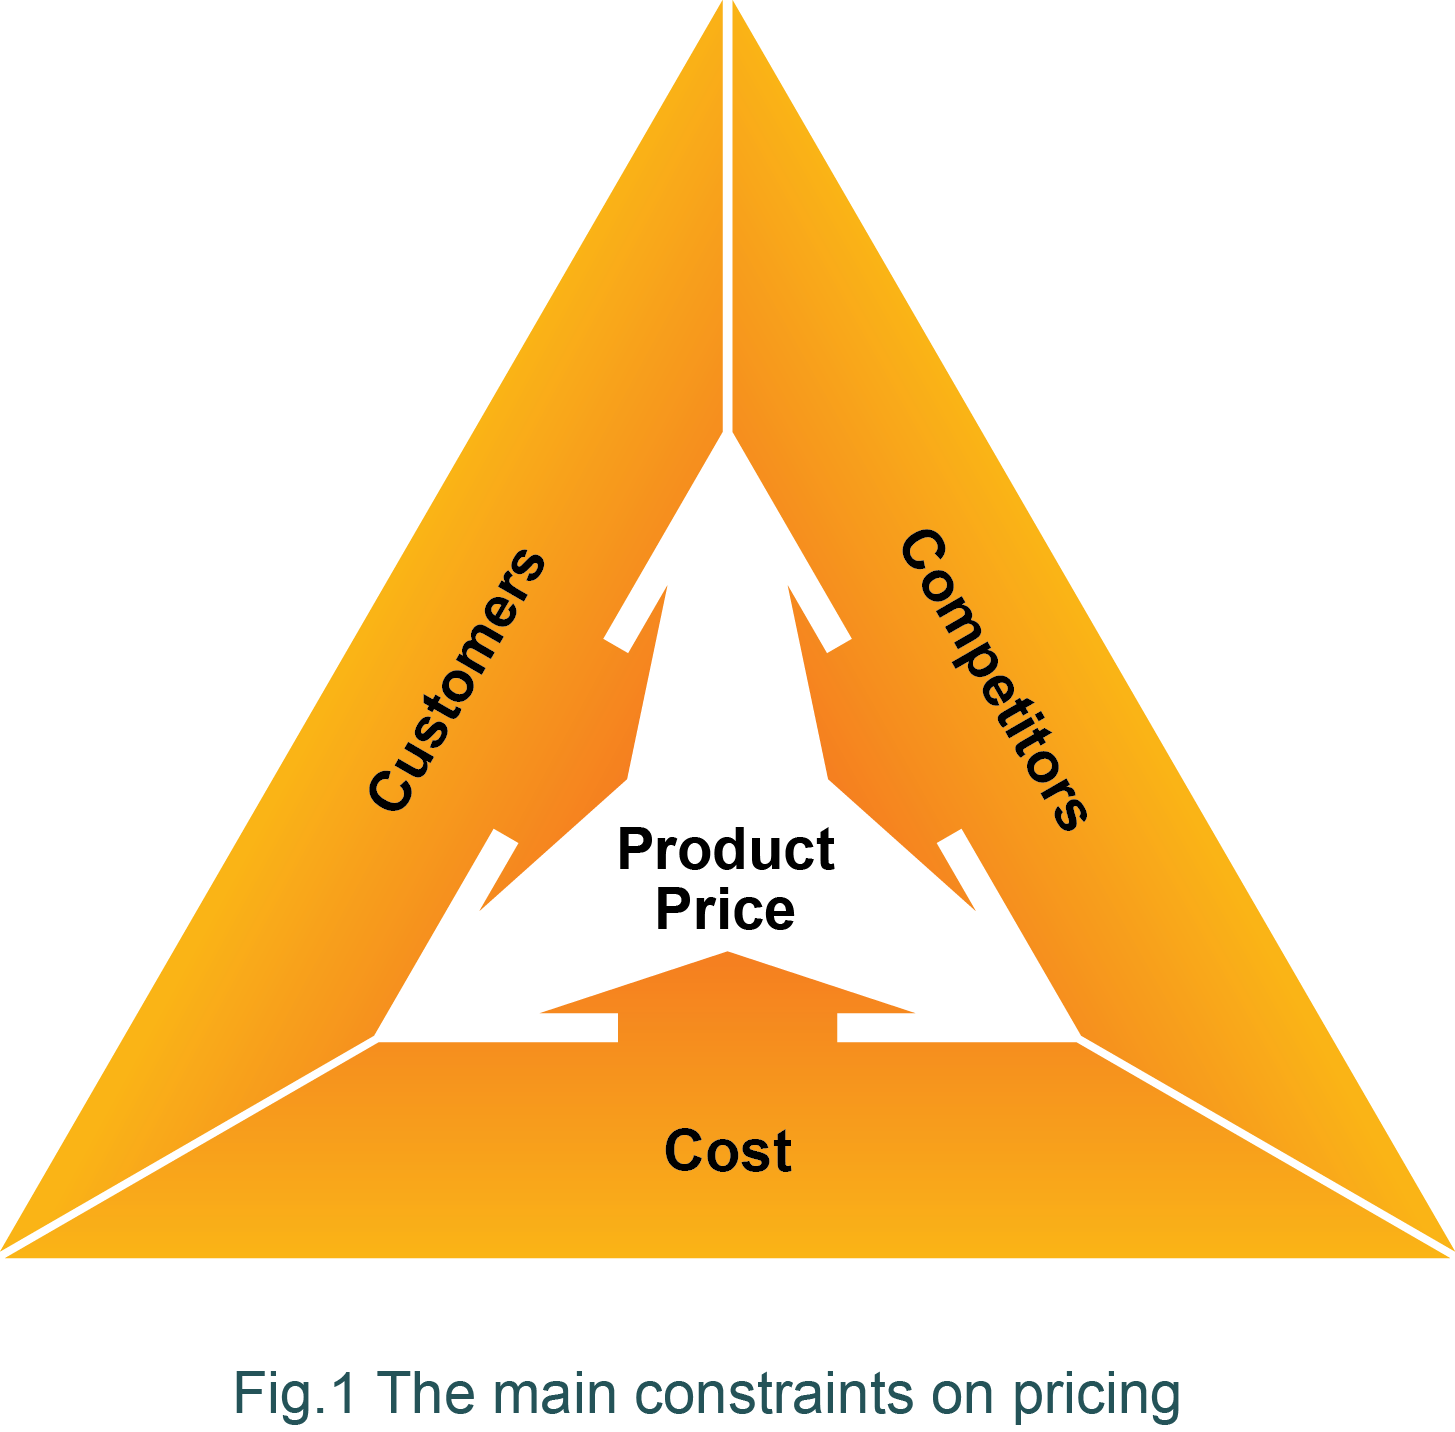 Diagram showing the constraints on pricing